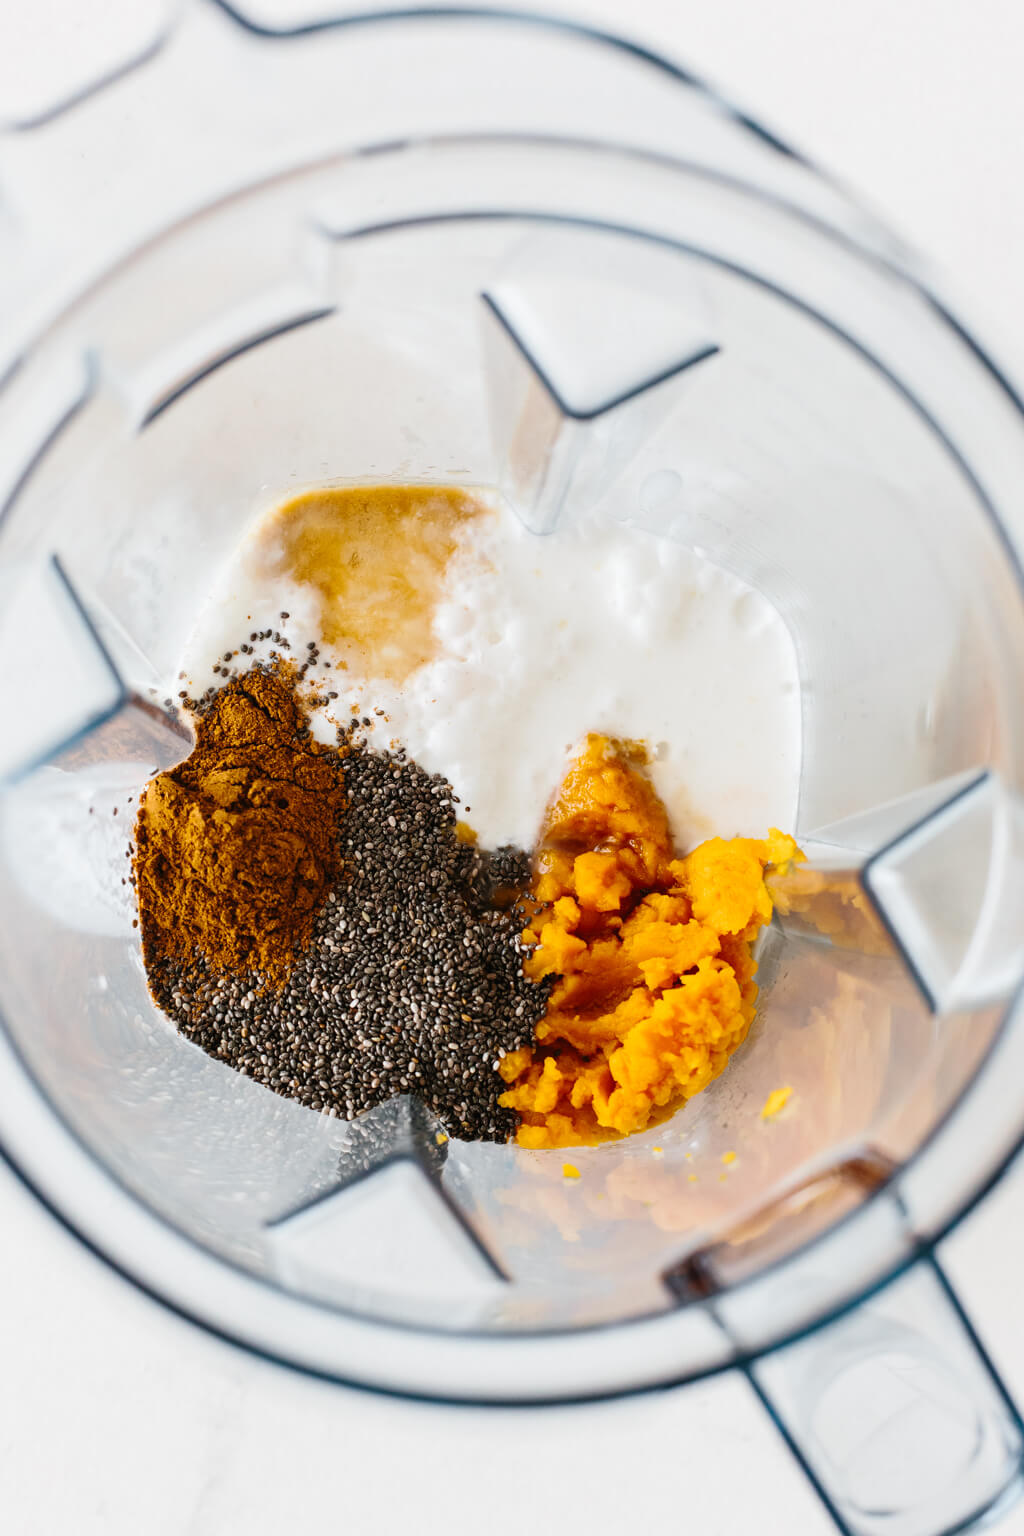 Ingredients to make pumpkin pie chia pudding in a blender.